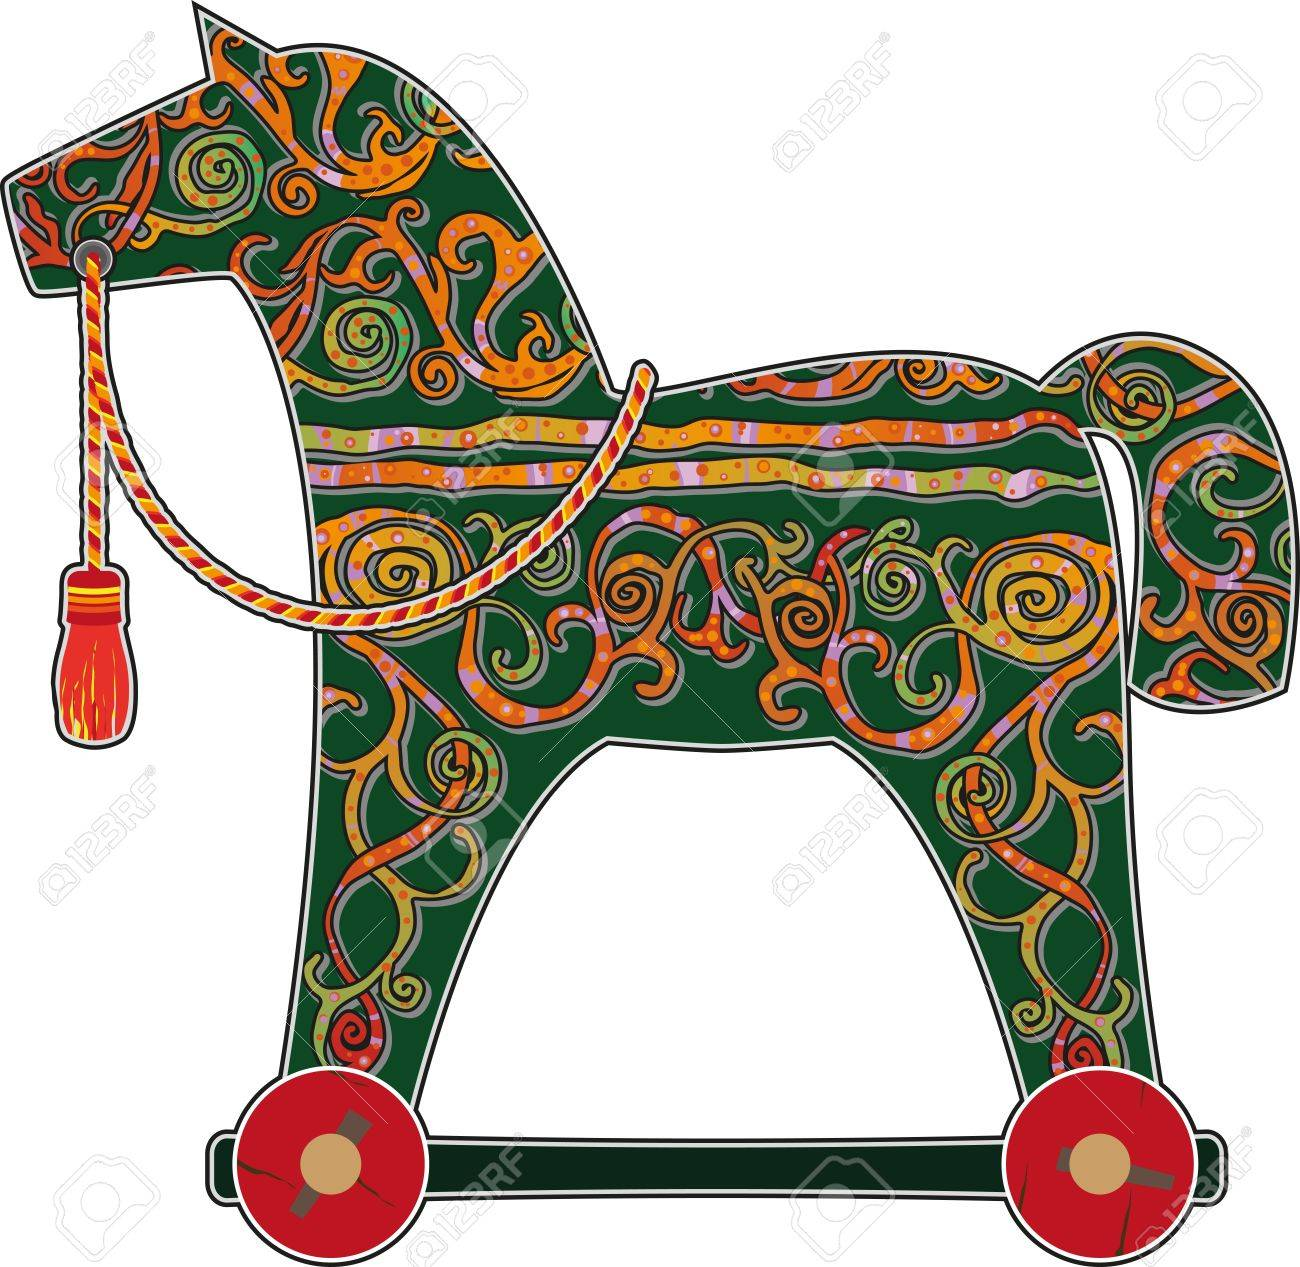 Children S Hand Painted Rocking Horse On Wheels Royalty Free Cliparts Vectors And Stock Illustration Image 21701262